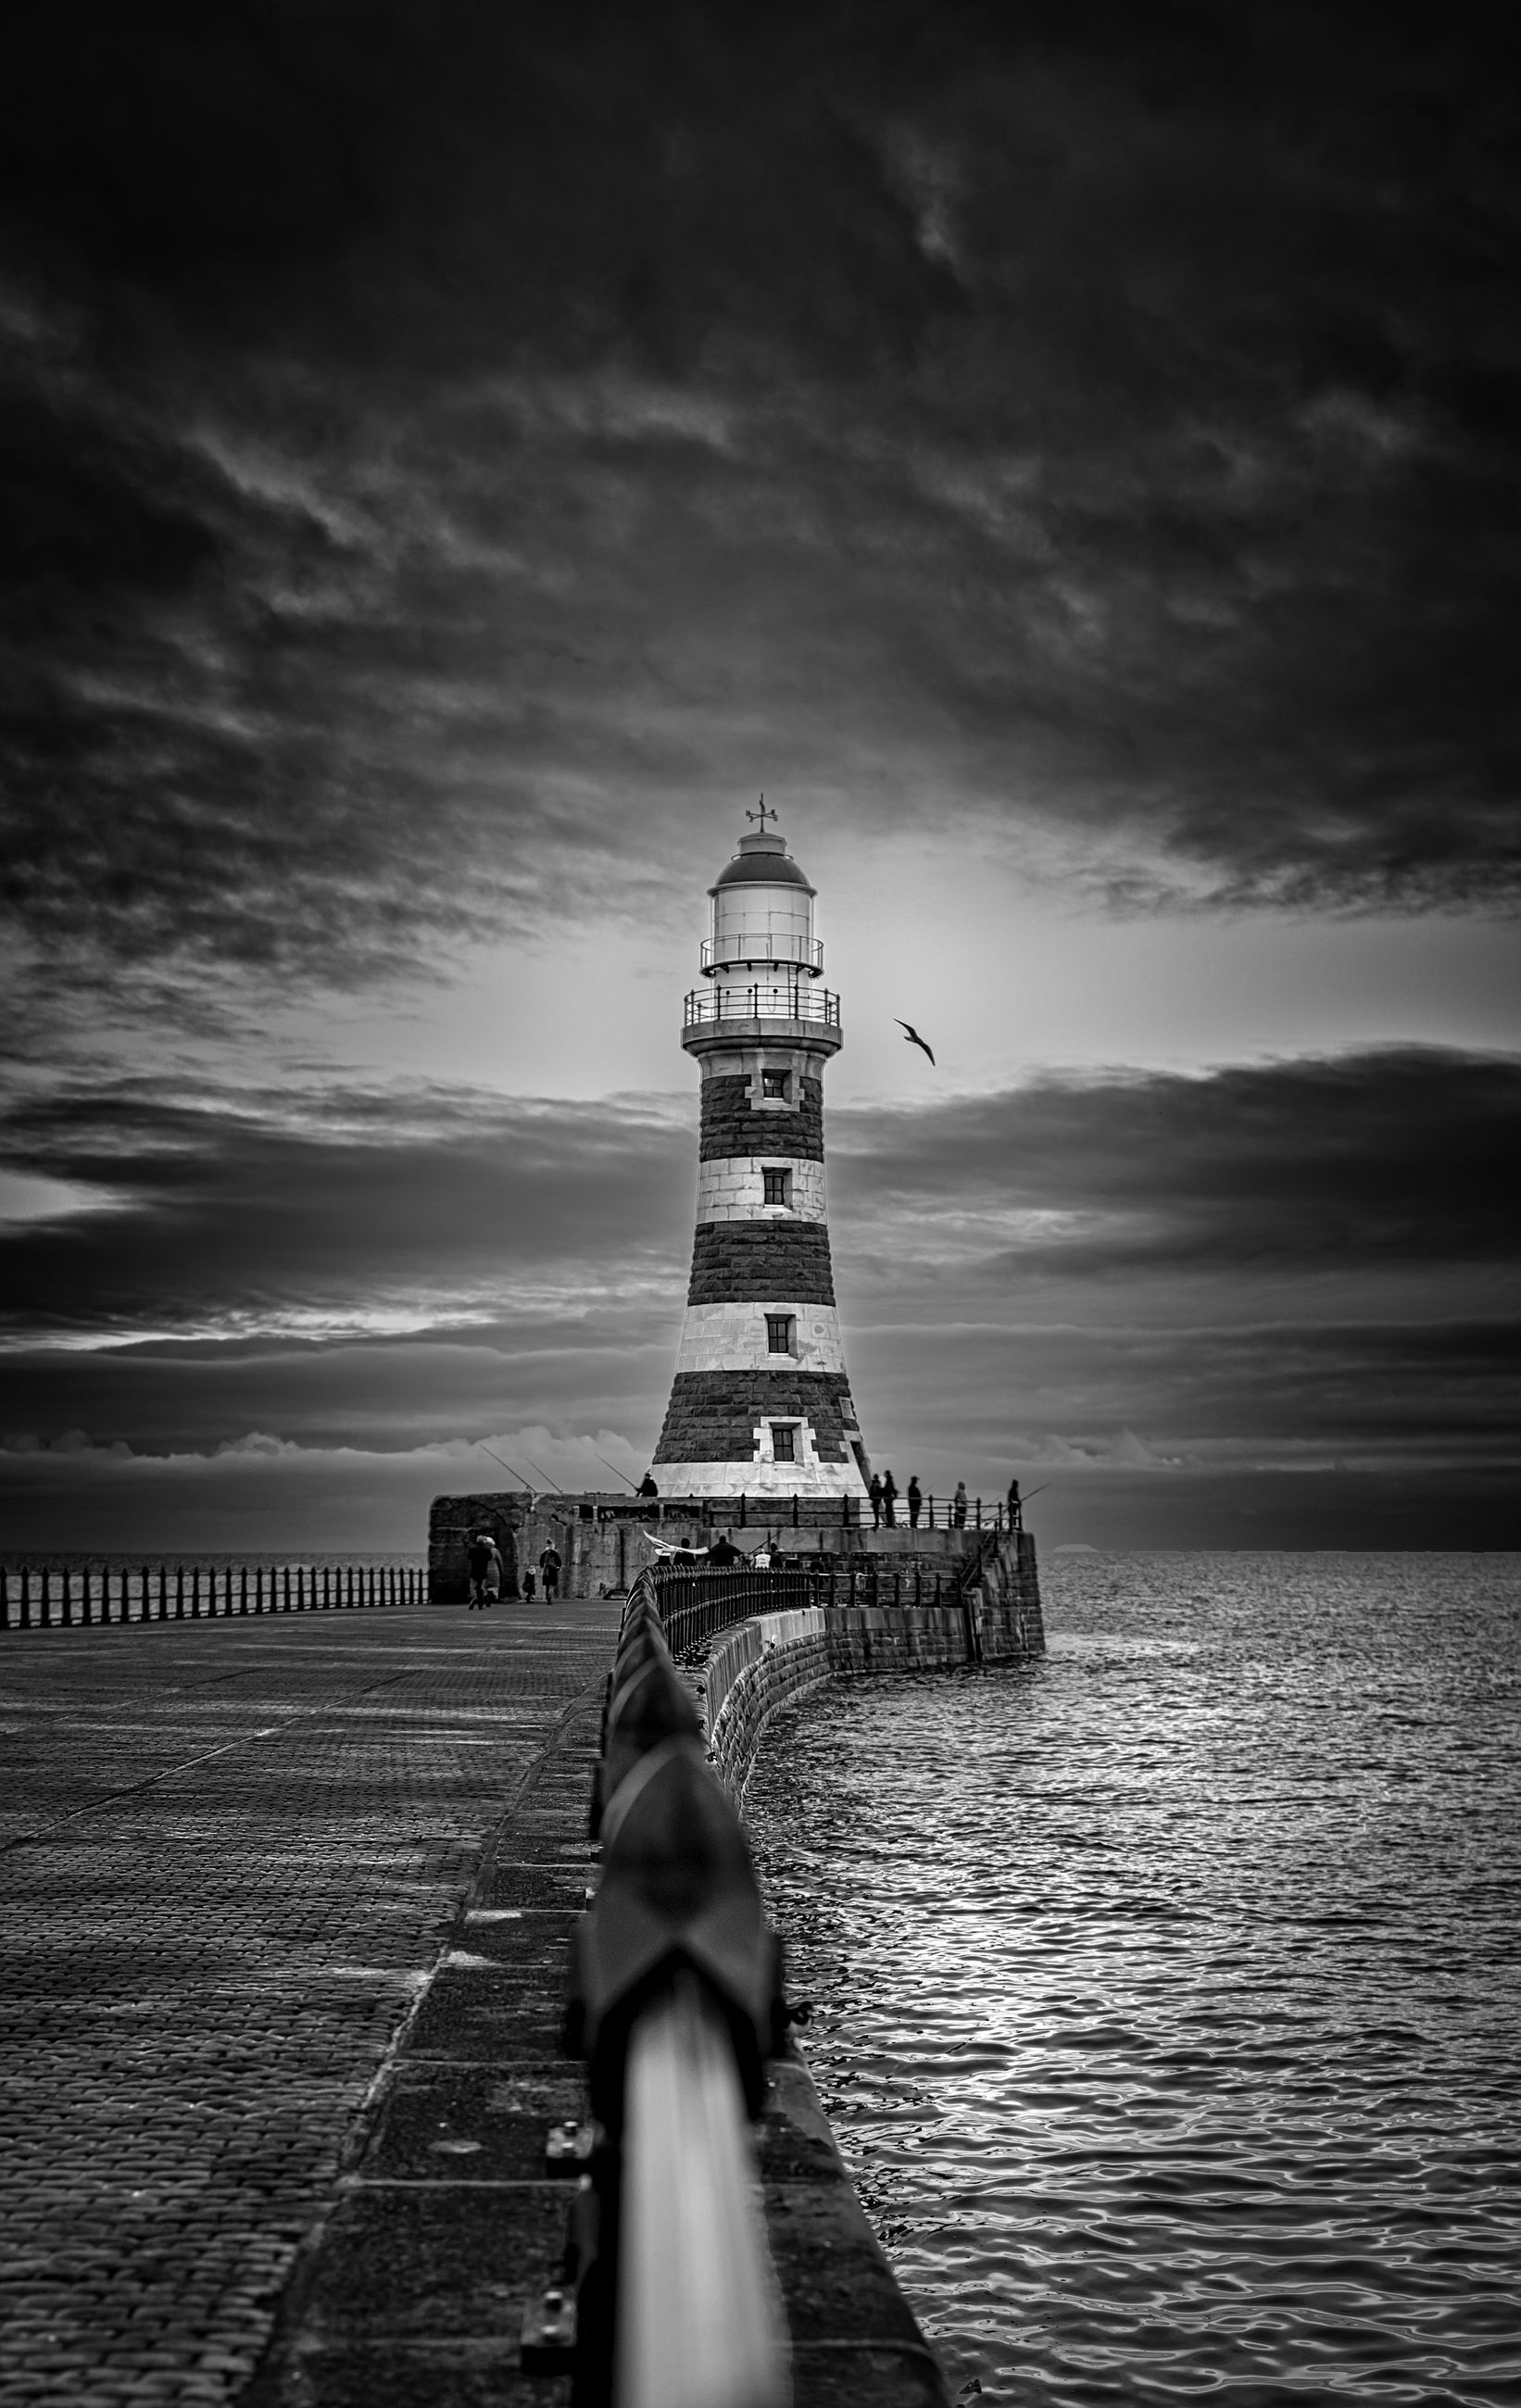 sky, water, cloud - sky, sea, architecture, built structure, tower, guidance, real people, direction, nature, lighthouse, building exterior, one person, scenics - nature, land, blurred motion, leisure activity, beauty in nature, horizon over water, outdoors